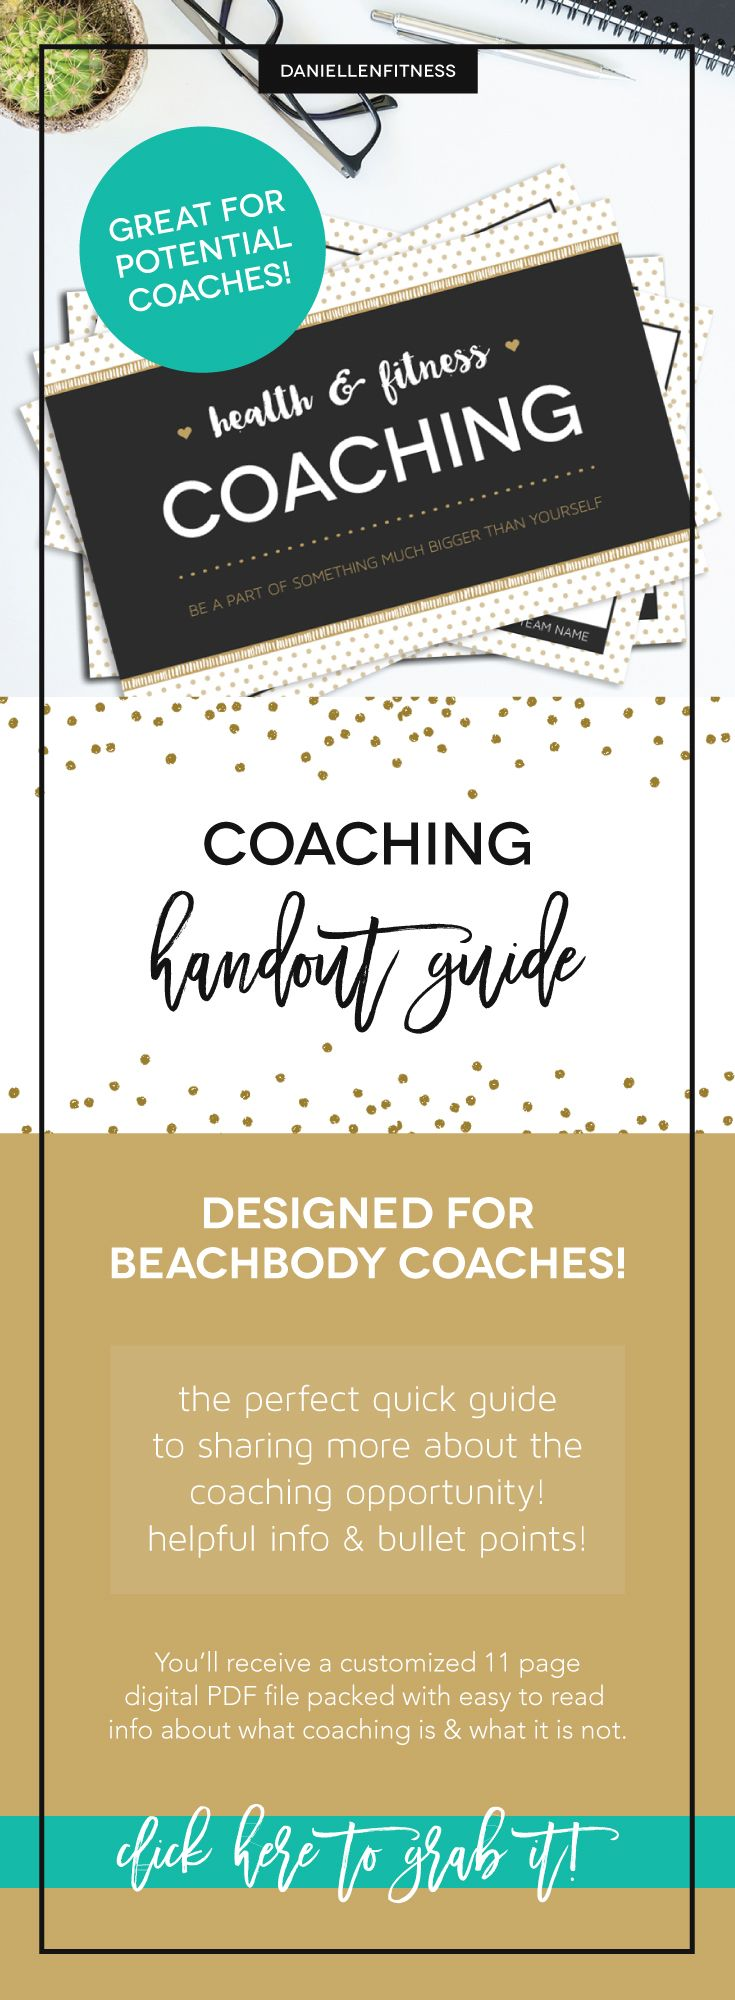 What is coaching? handout guide! Designed specifically for beachbody coaches to use as a great tool to share the opportunity! An 11 page digital file with bullet points about what coaching is along with coach contact info on the back. Comes in 4 different color schemes and is customized with your tag line, team name and contact info. // what is a beachbody coach // coaching info // coaching tool // coaching resource // beachbody coach // beachbody coaching // coaching guide // coach resource…